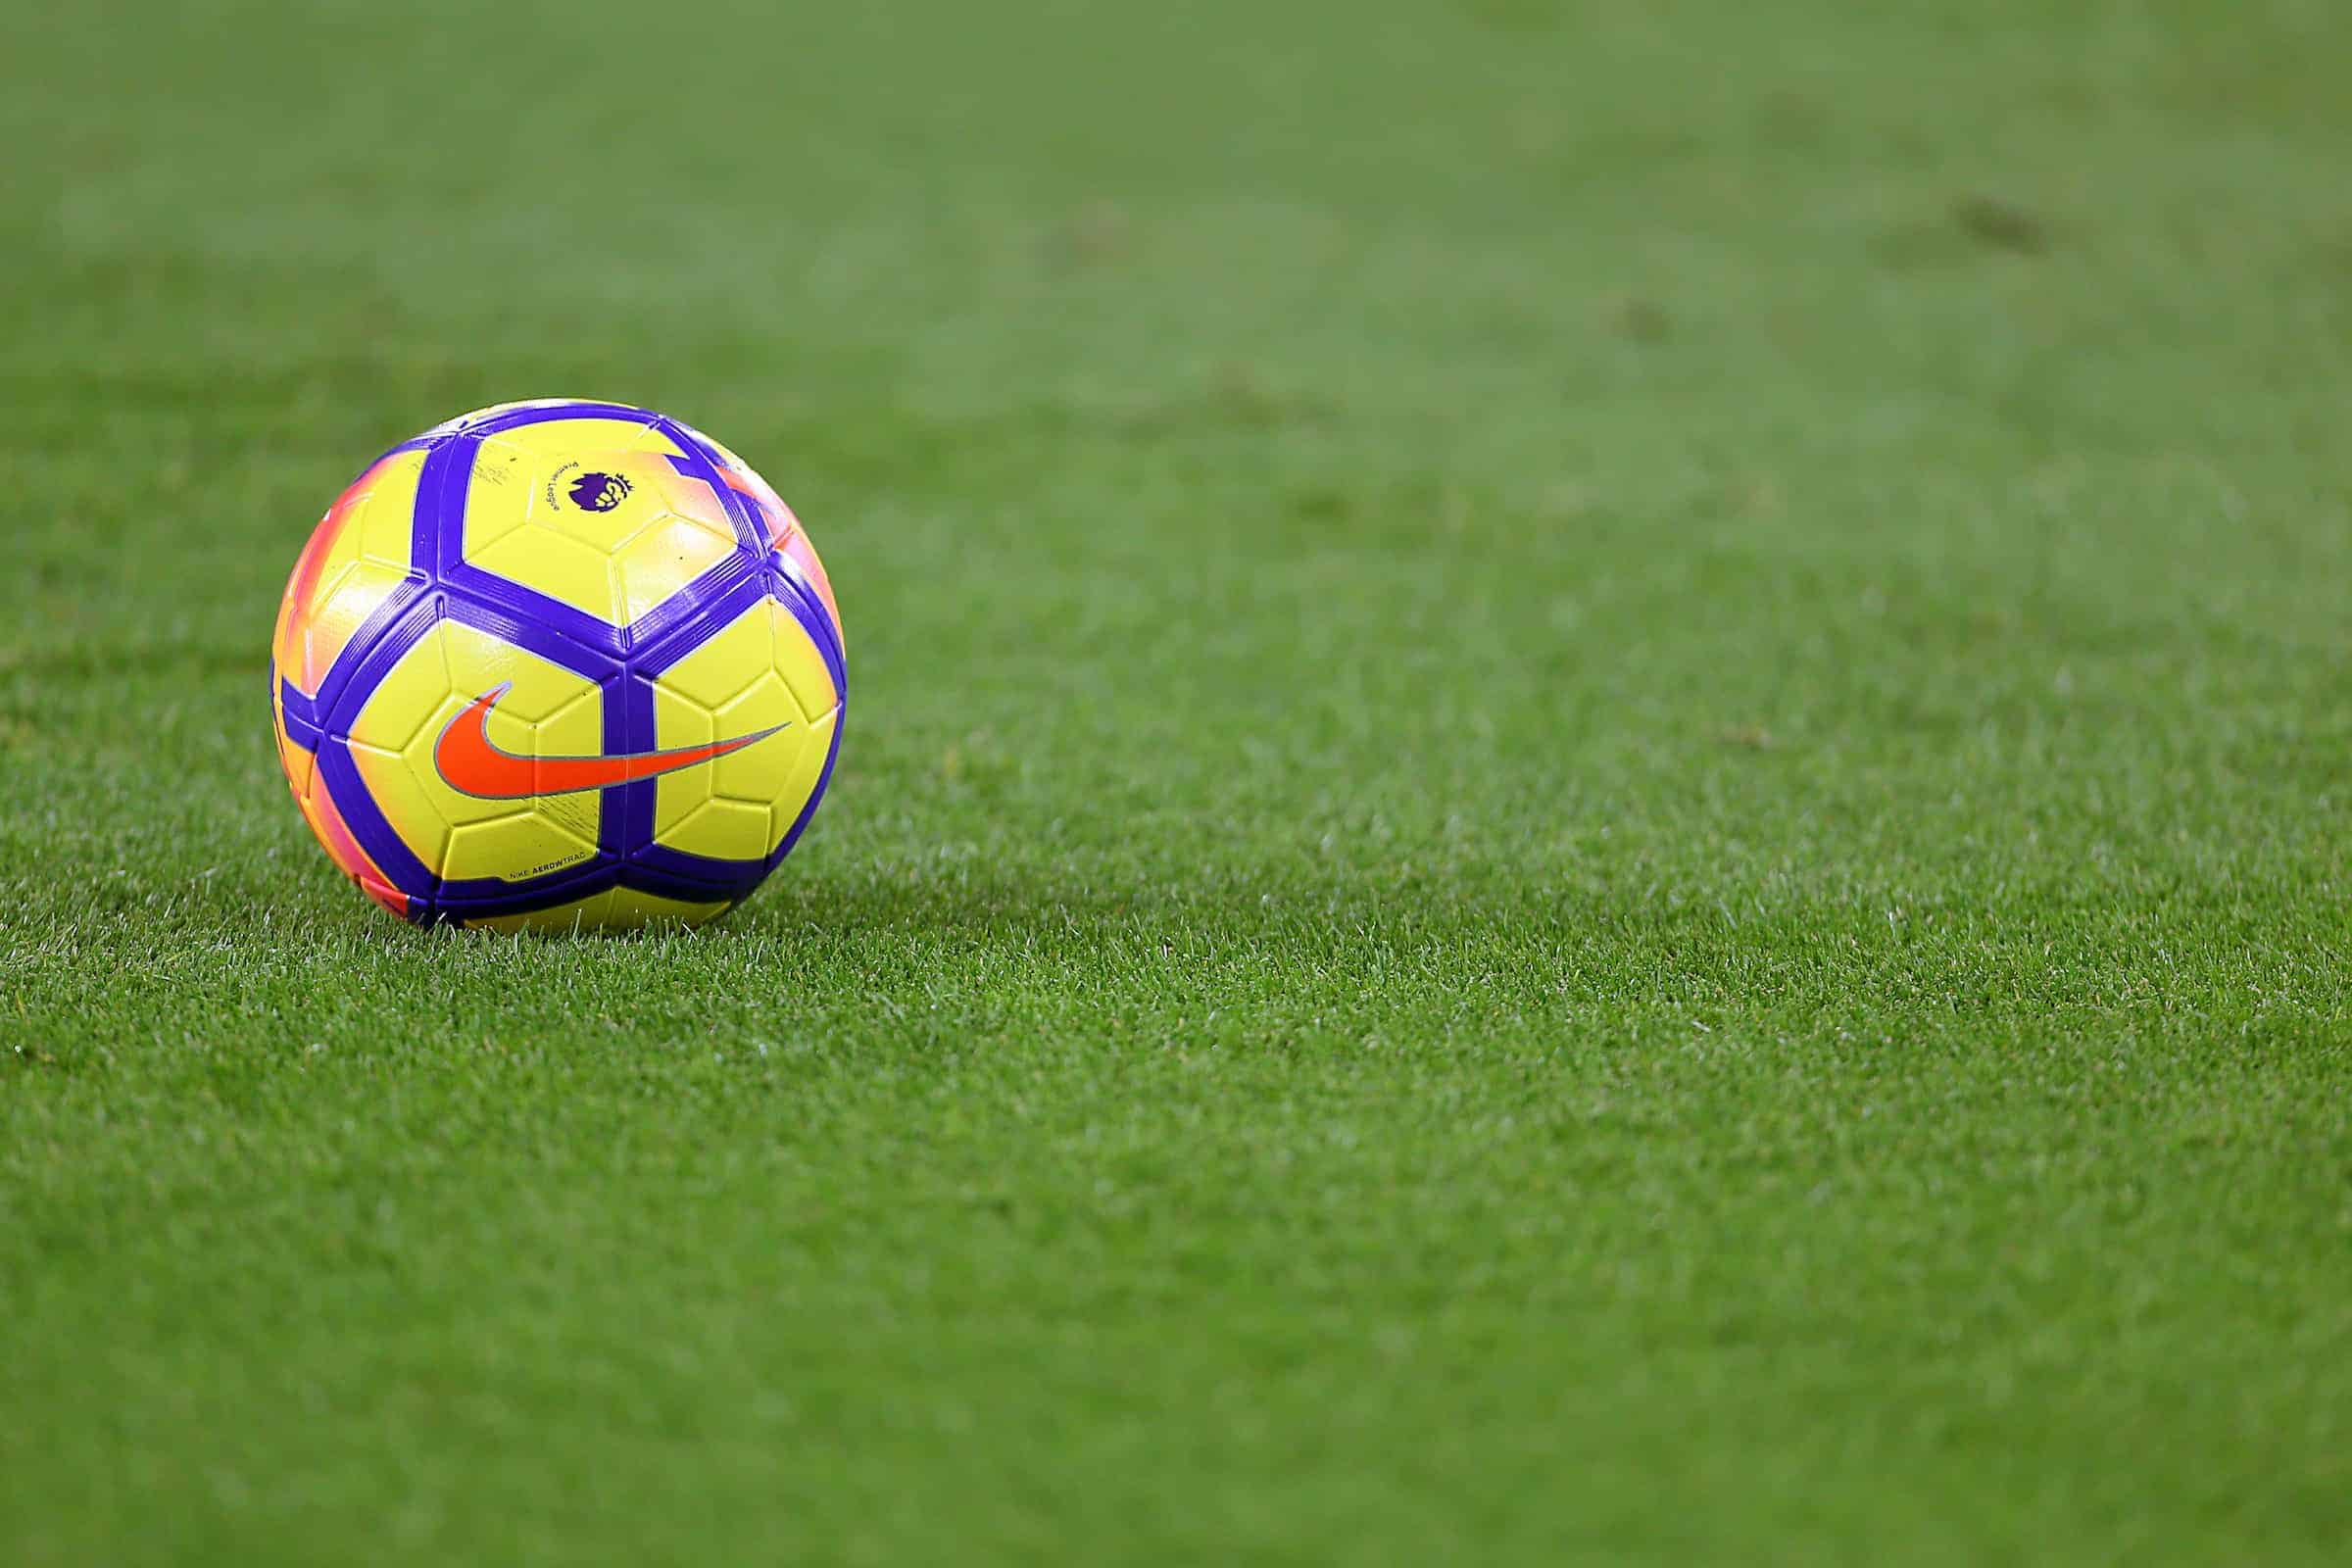 General view of a Nike football on the pitch ahead of the match